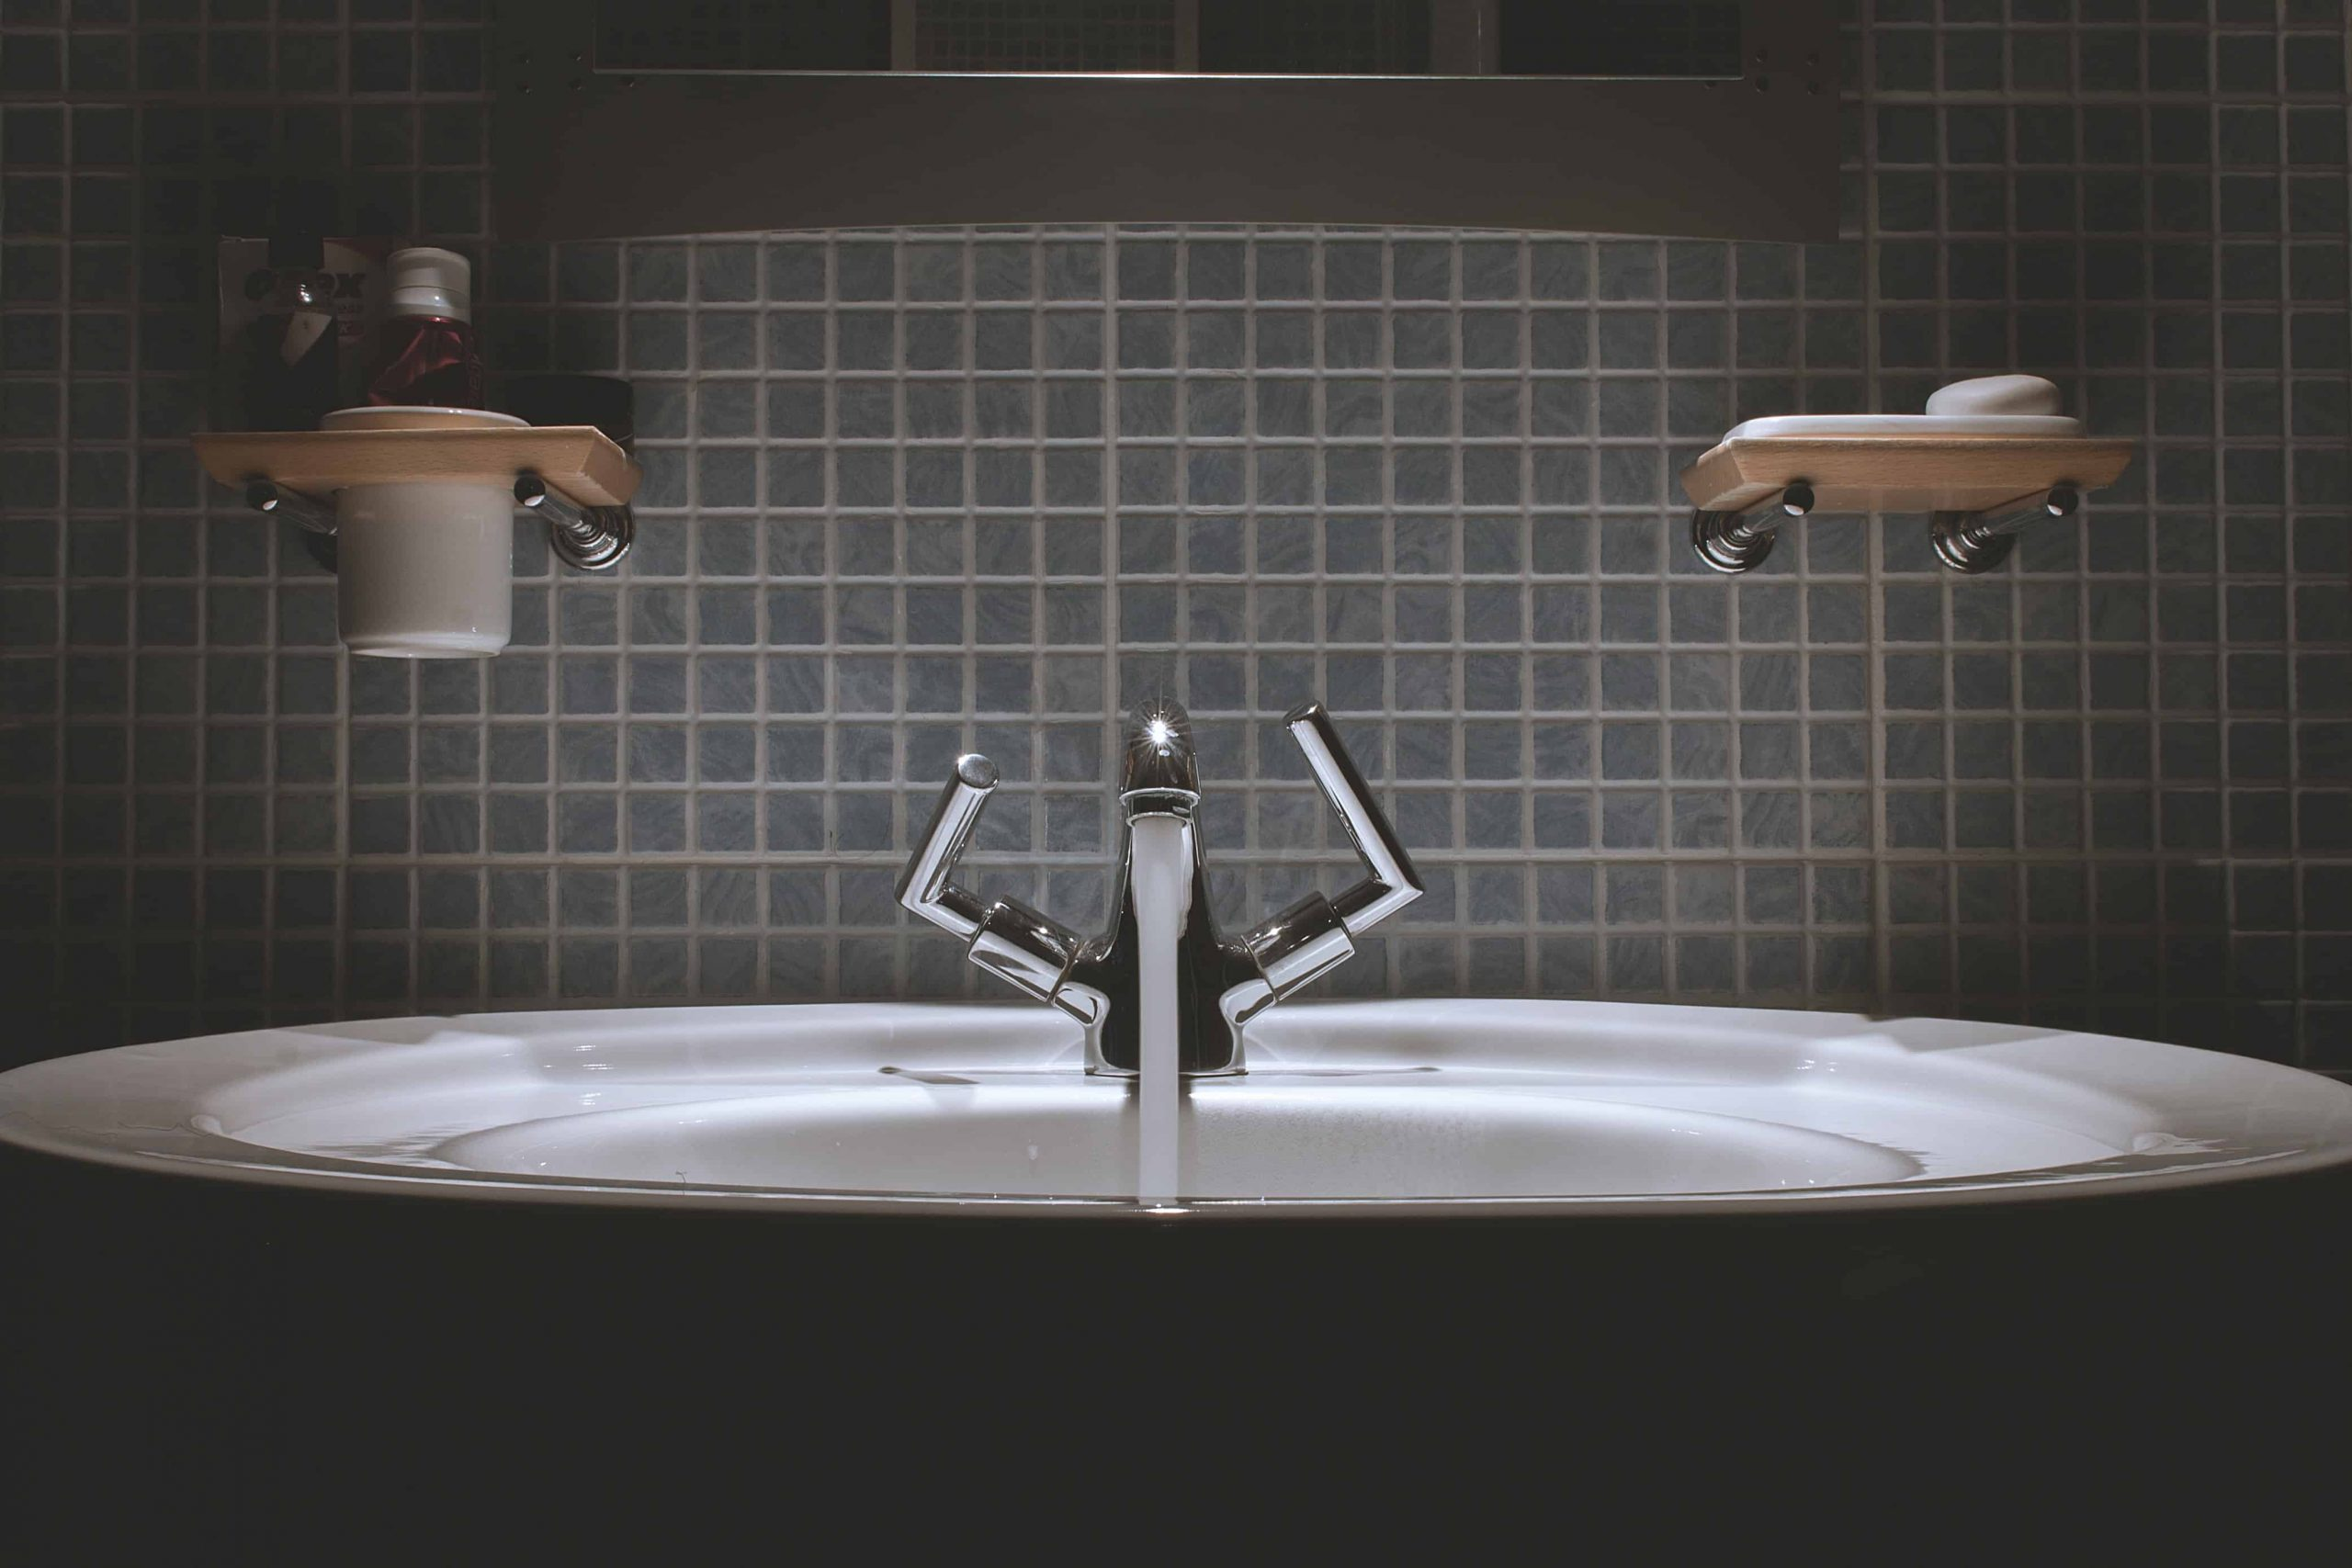 10 Stylish Bathroom Faucet Reviews – Upgrade Your Lavatory in 2021